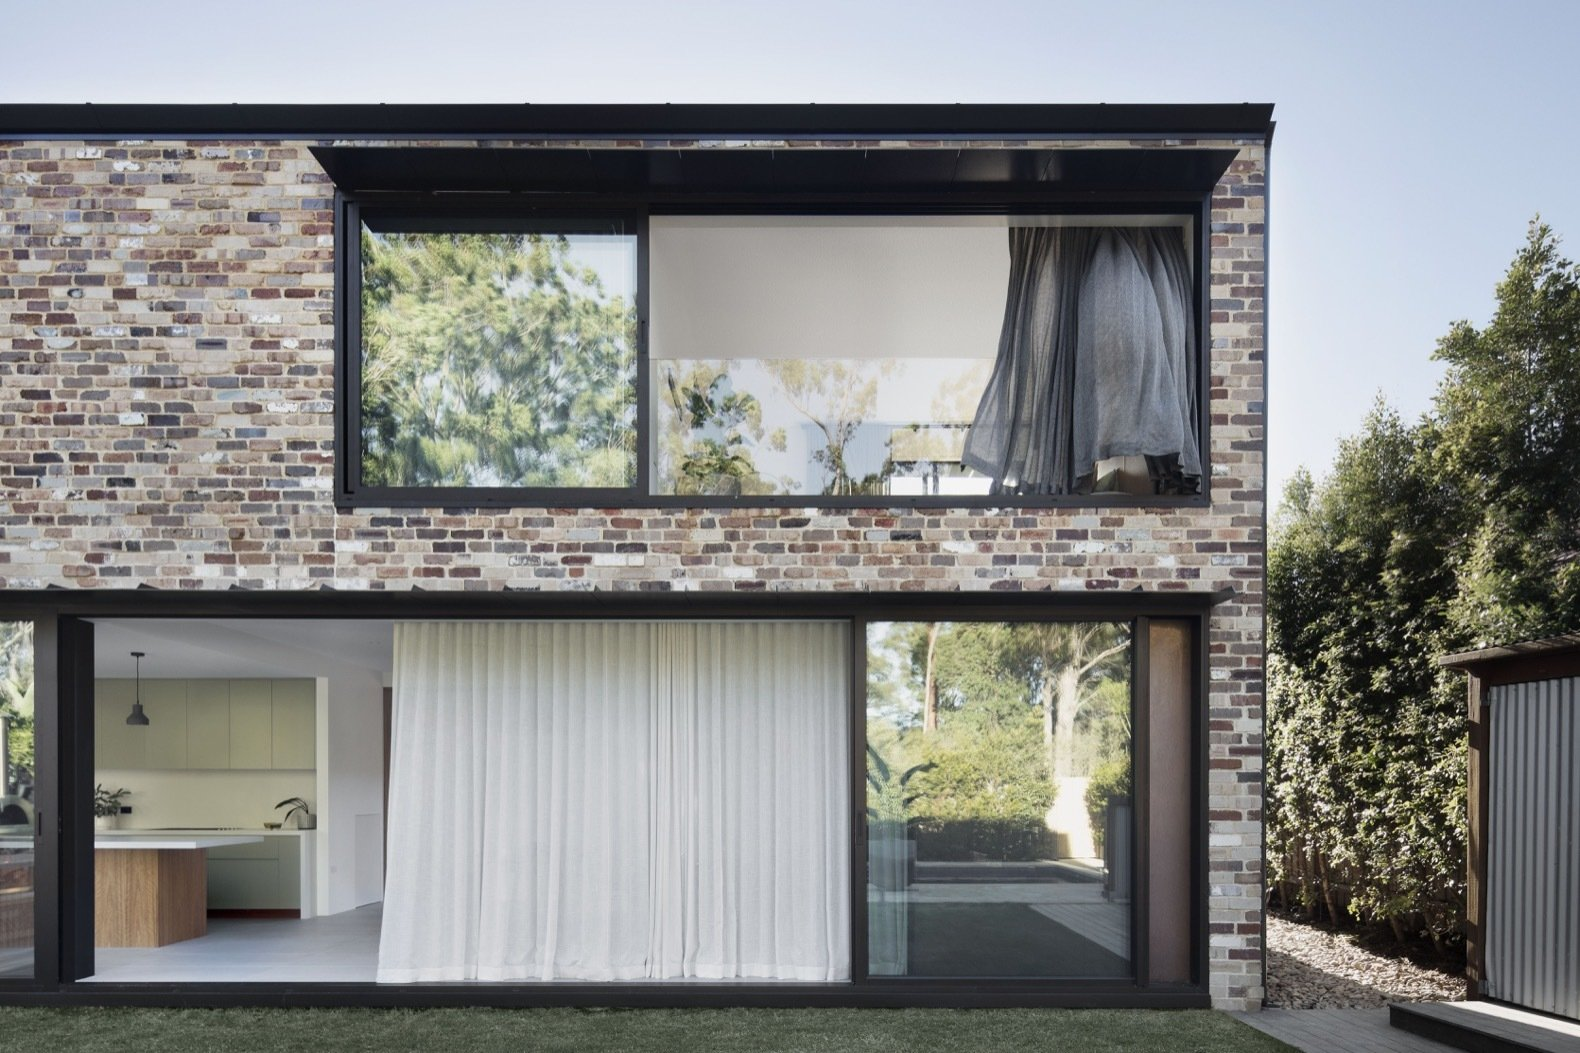 Courtyard House by Youssofzay + Hart exterior